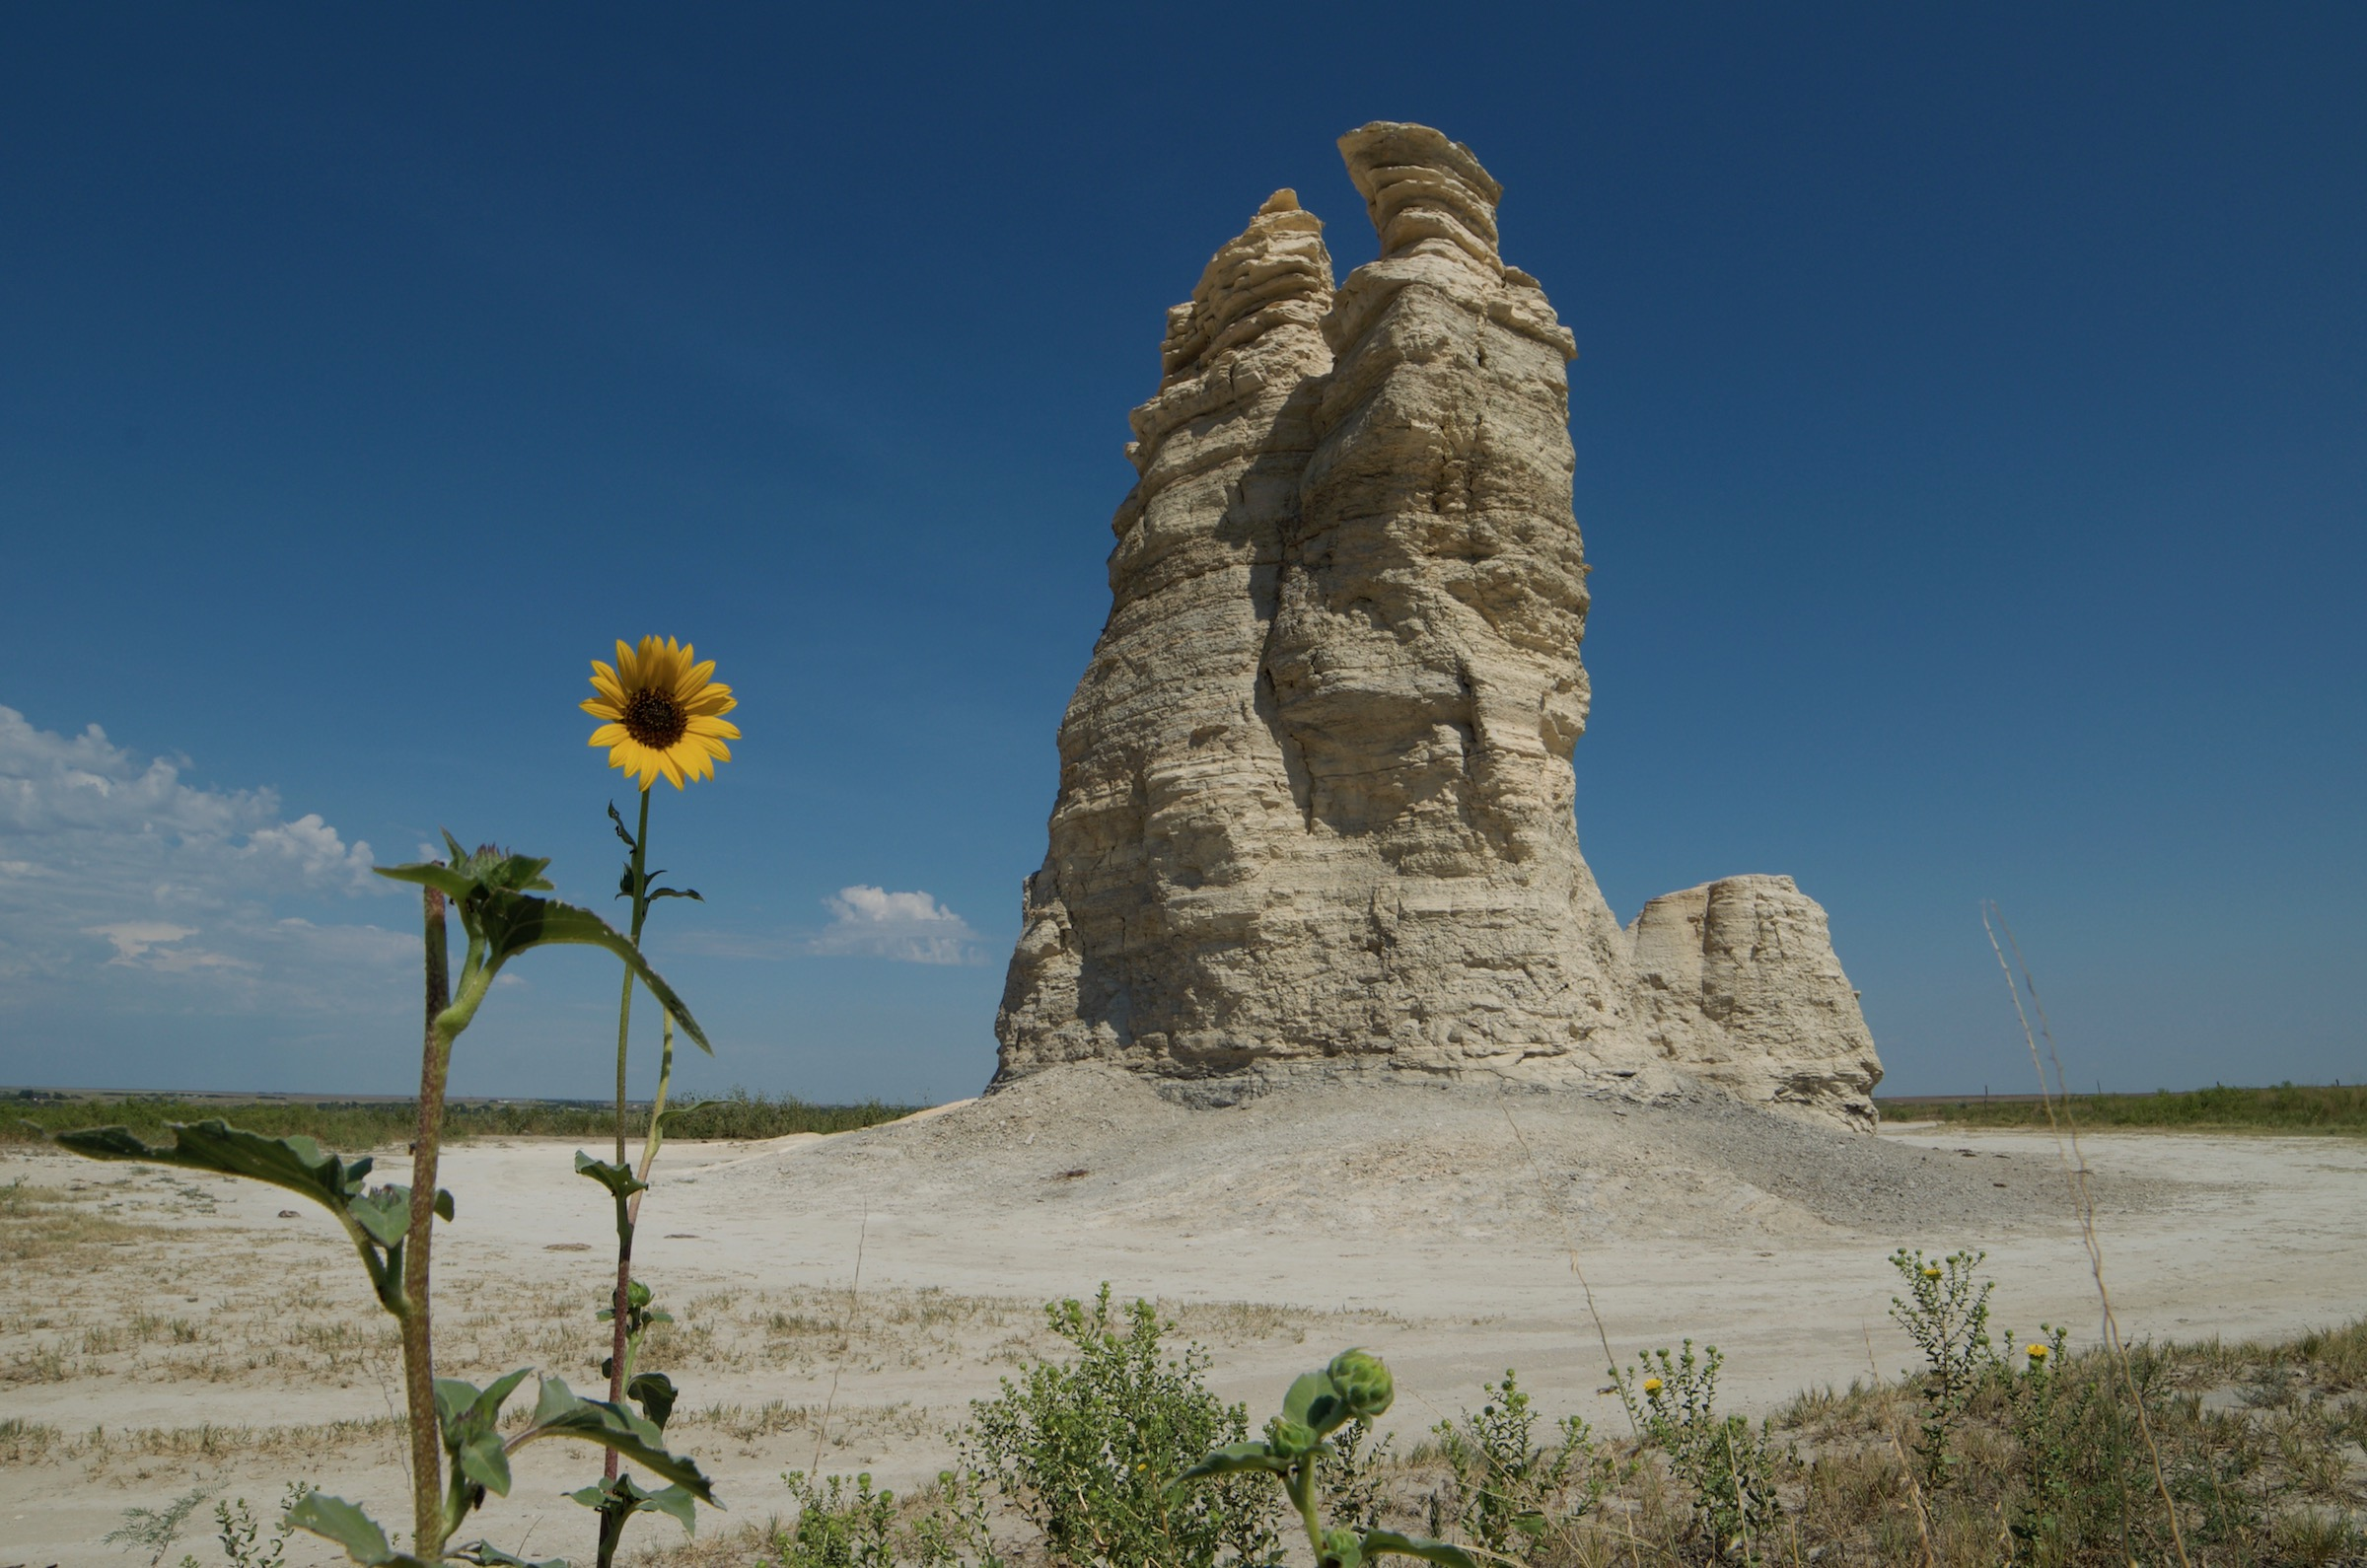 Once I made it to Castle Rock, I was glad that I decided to take the detour.